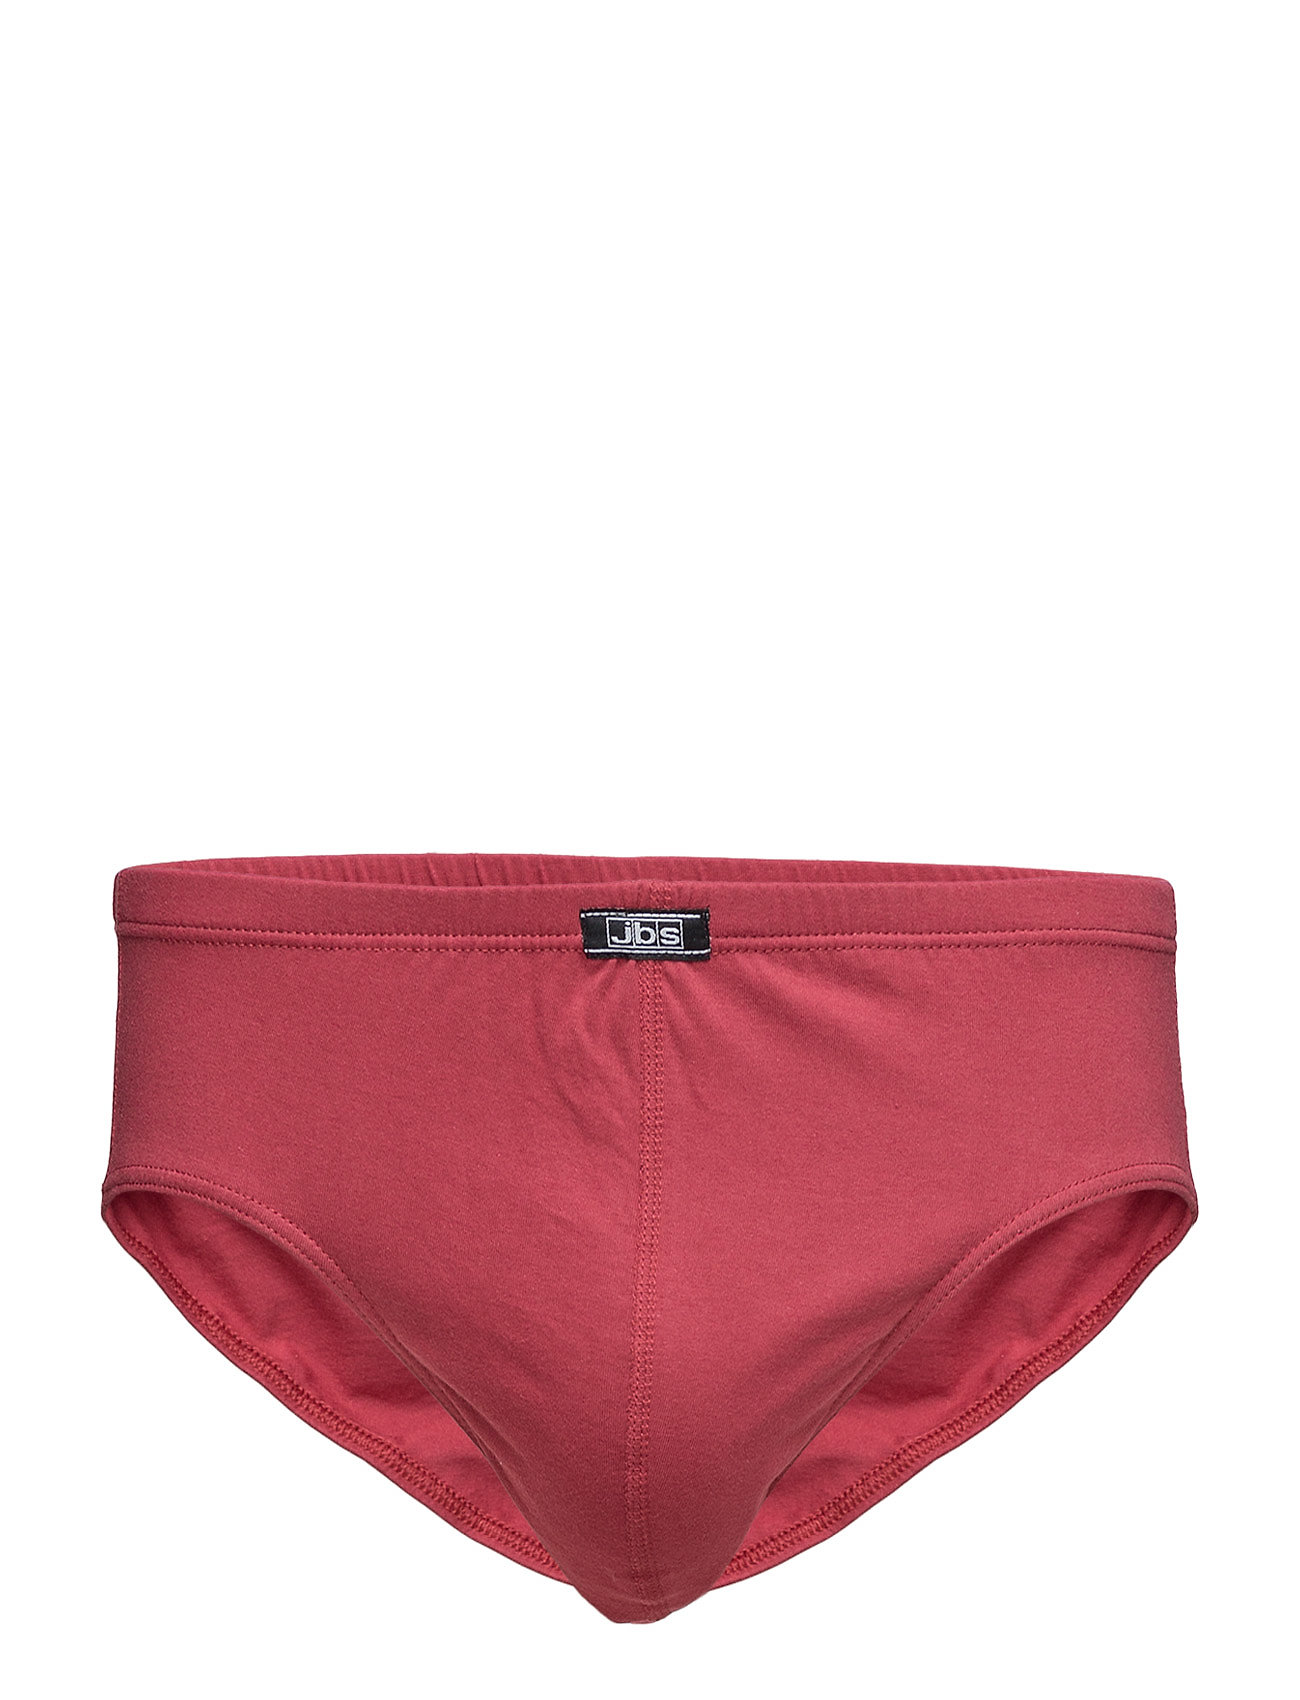 JBS JBS mini slip - RED